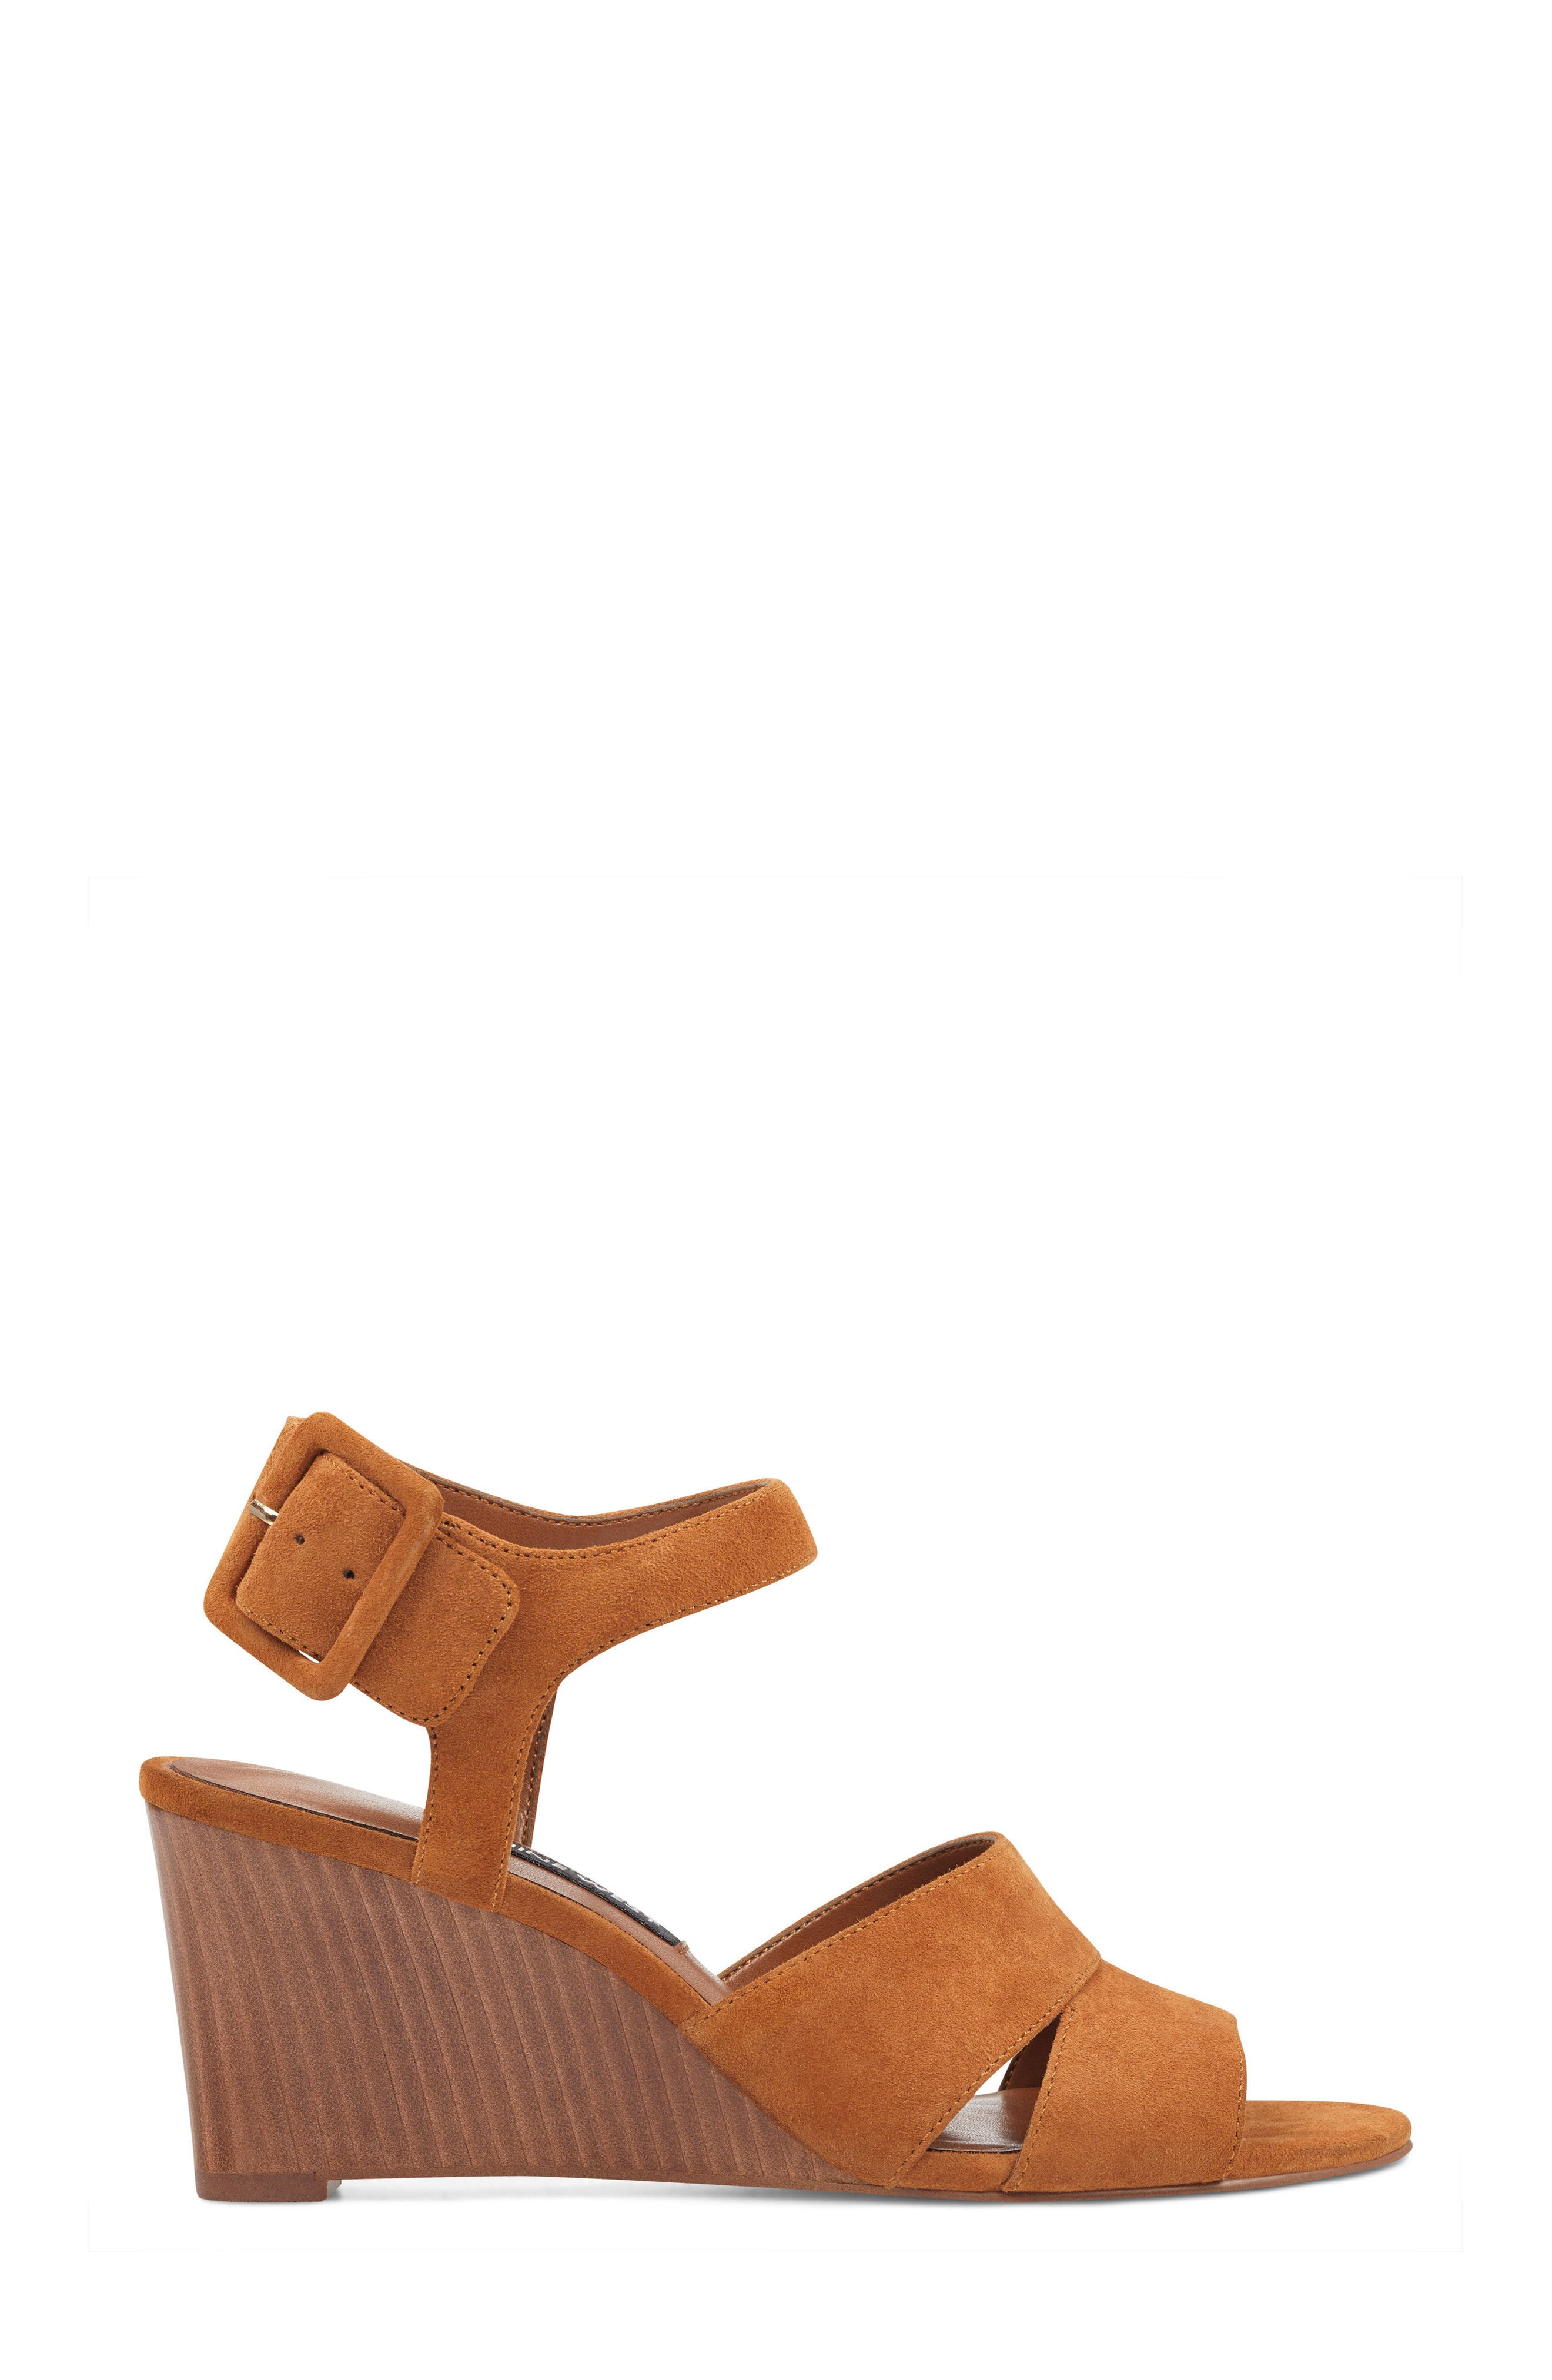 Vahan Wedge Sandal,                             Alternate thumbnail 3, color,                             Dark Natural Suede